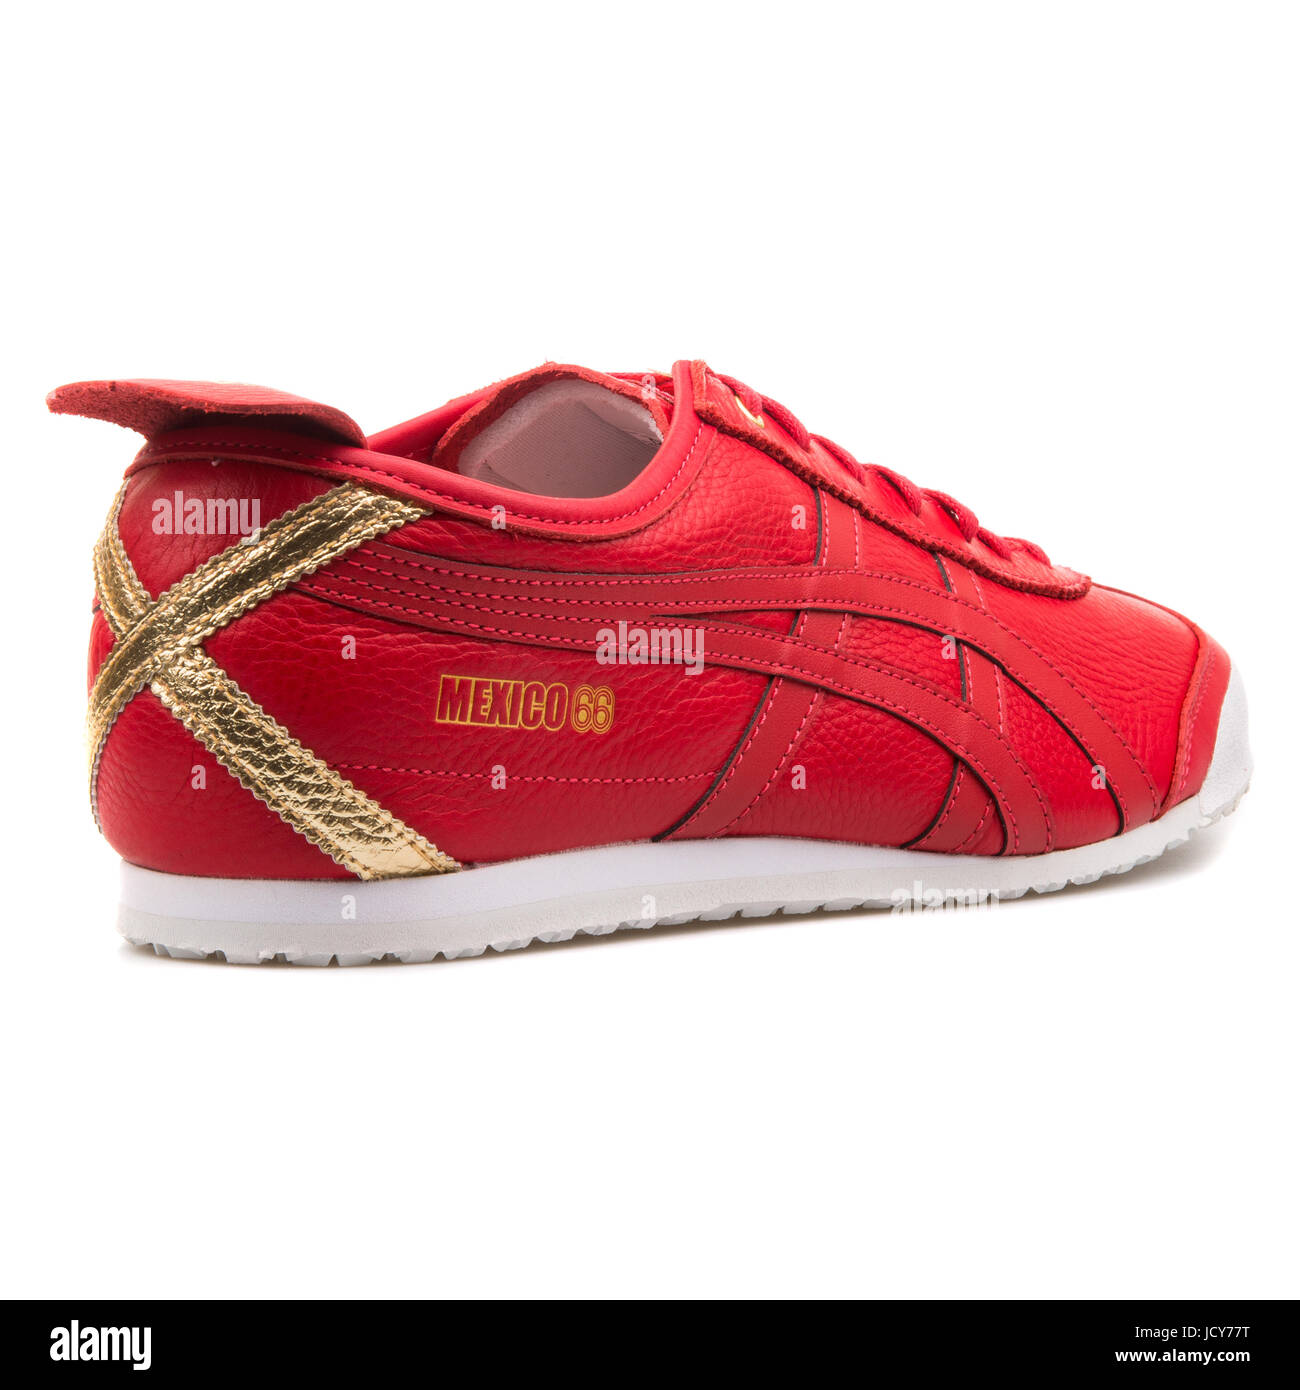 pretty nice 9ec98 e8dbb Onitsuka Tiger Mexico 66 Red Leather Unisex Sports Shoes ...